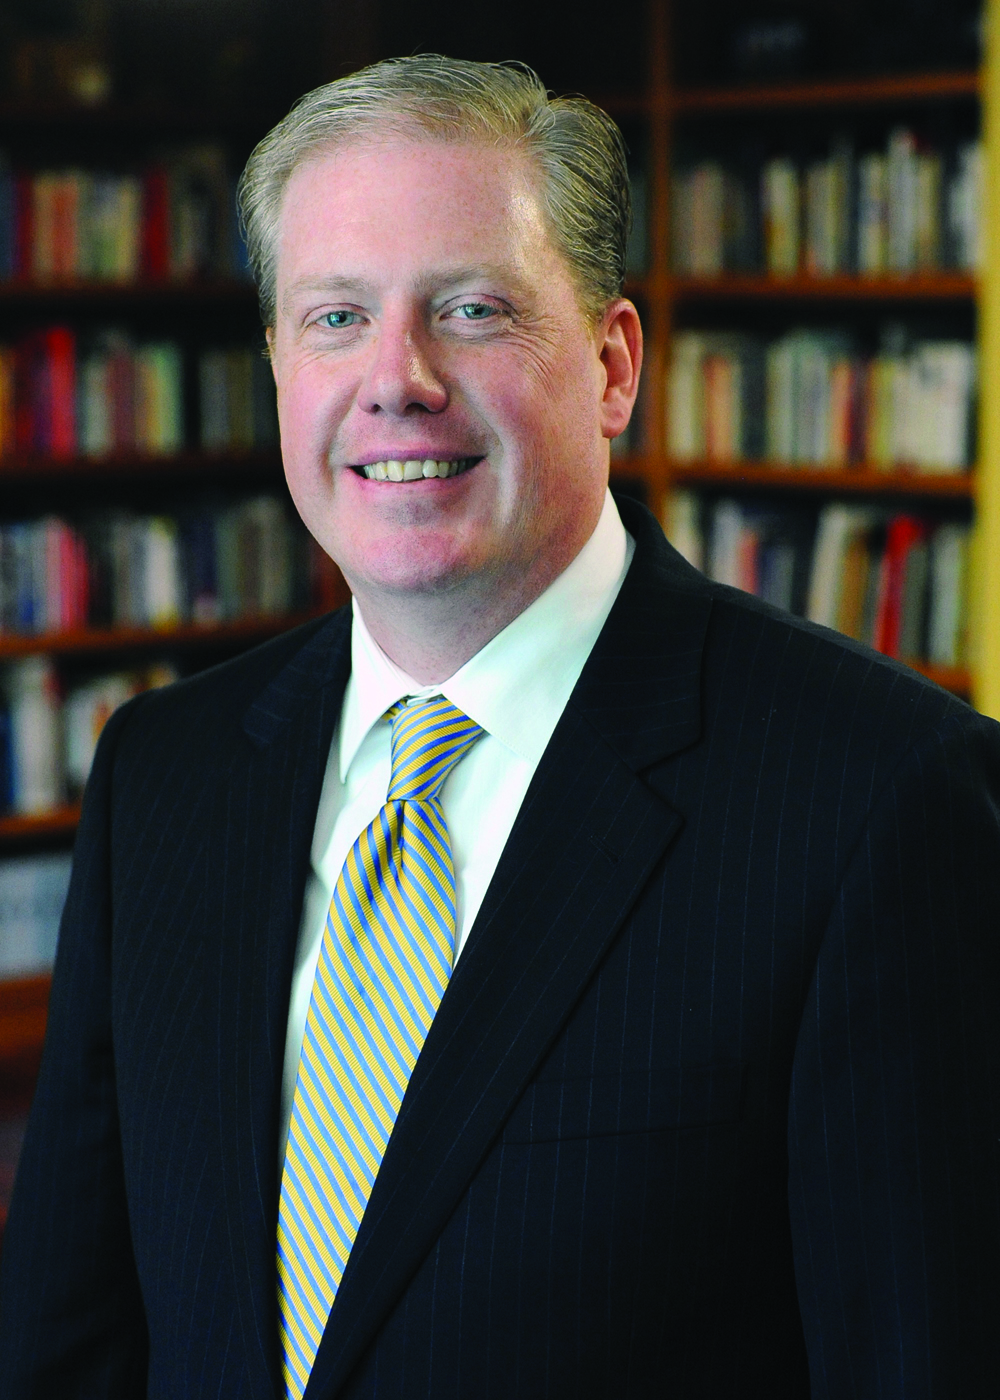 Gregg delivers lecture on Washington, statesmanship at University of Cincinnati